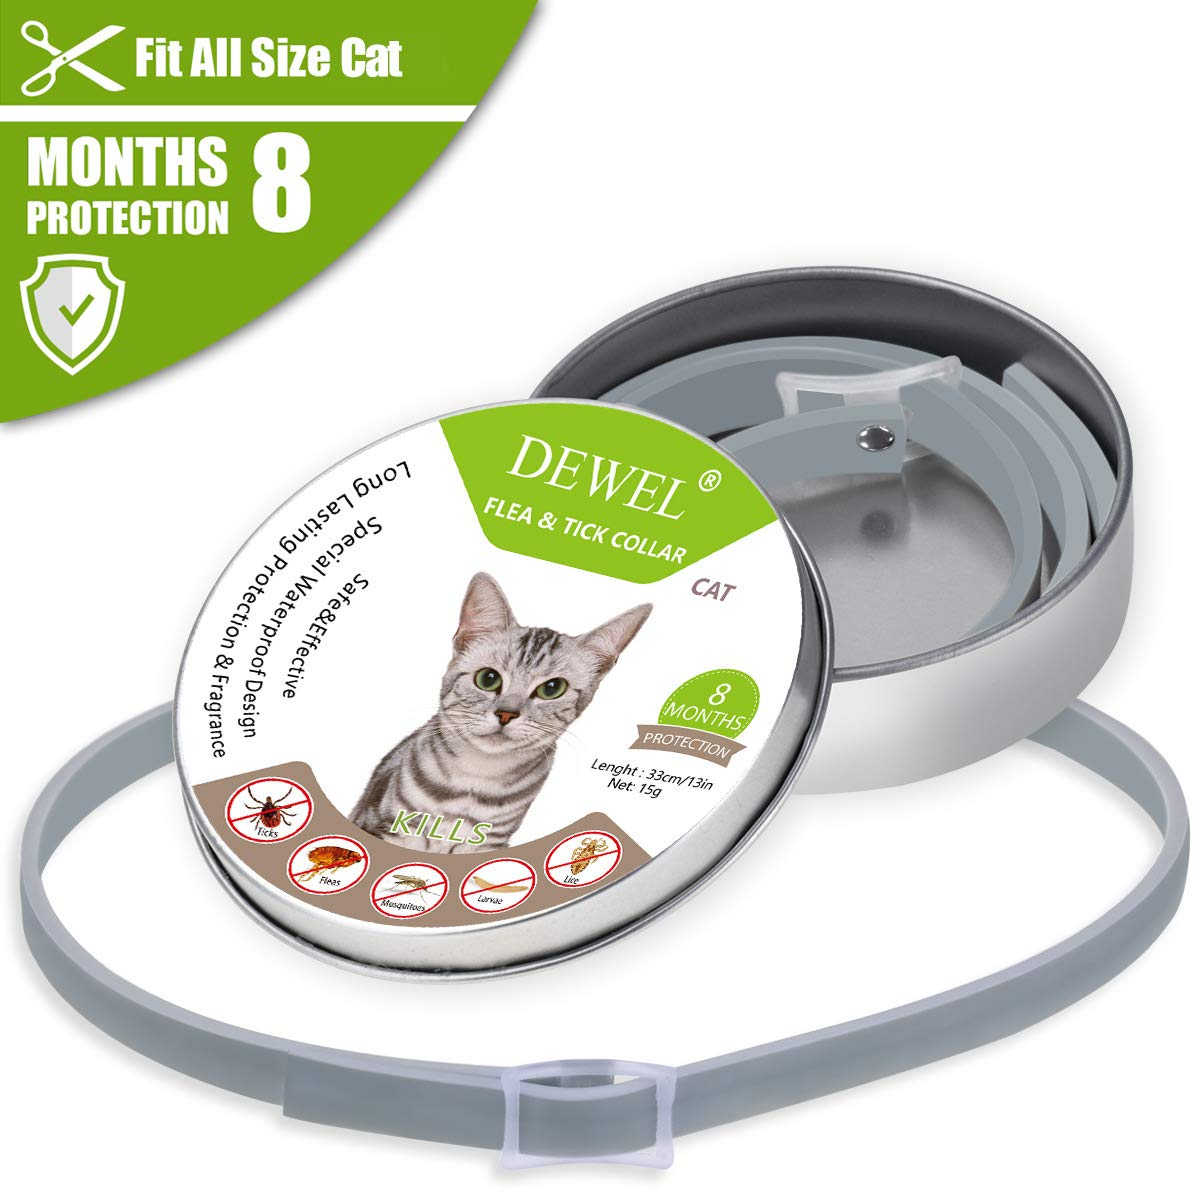 ZJH Flea and Tick Collar for Cats Waterproof, Adjustable and Natural Flea Collar Prevention Essential Oil for Pets One Size Fits All Cats by ZJH (Image #1)